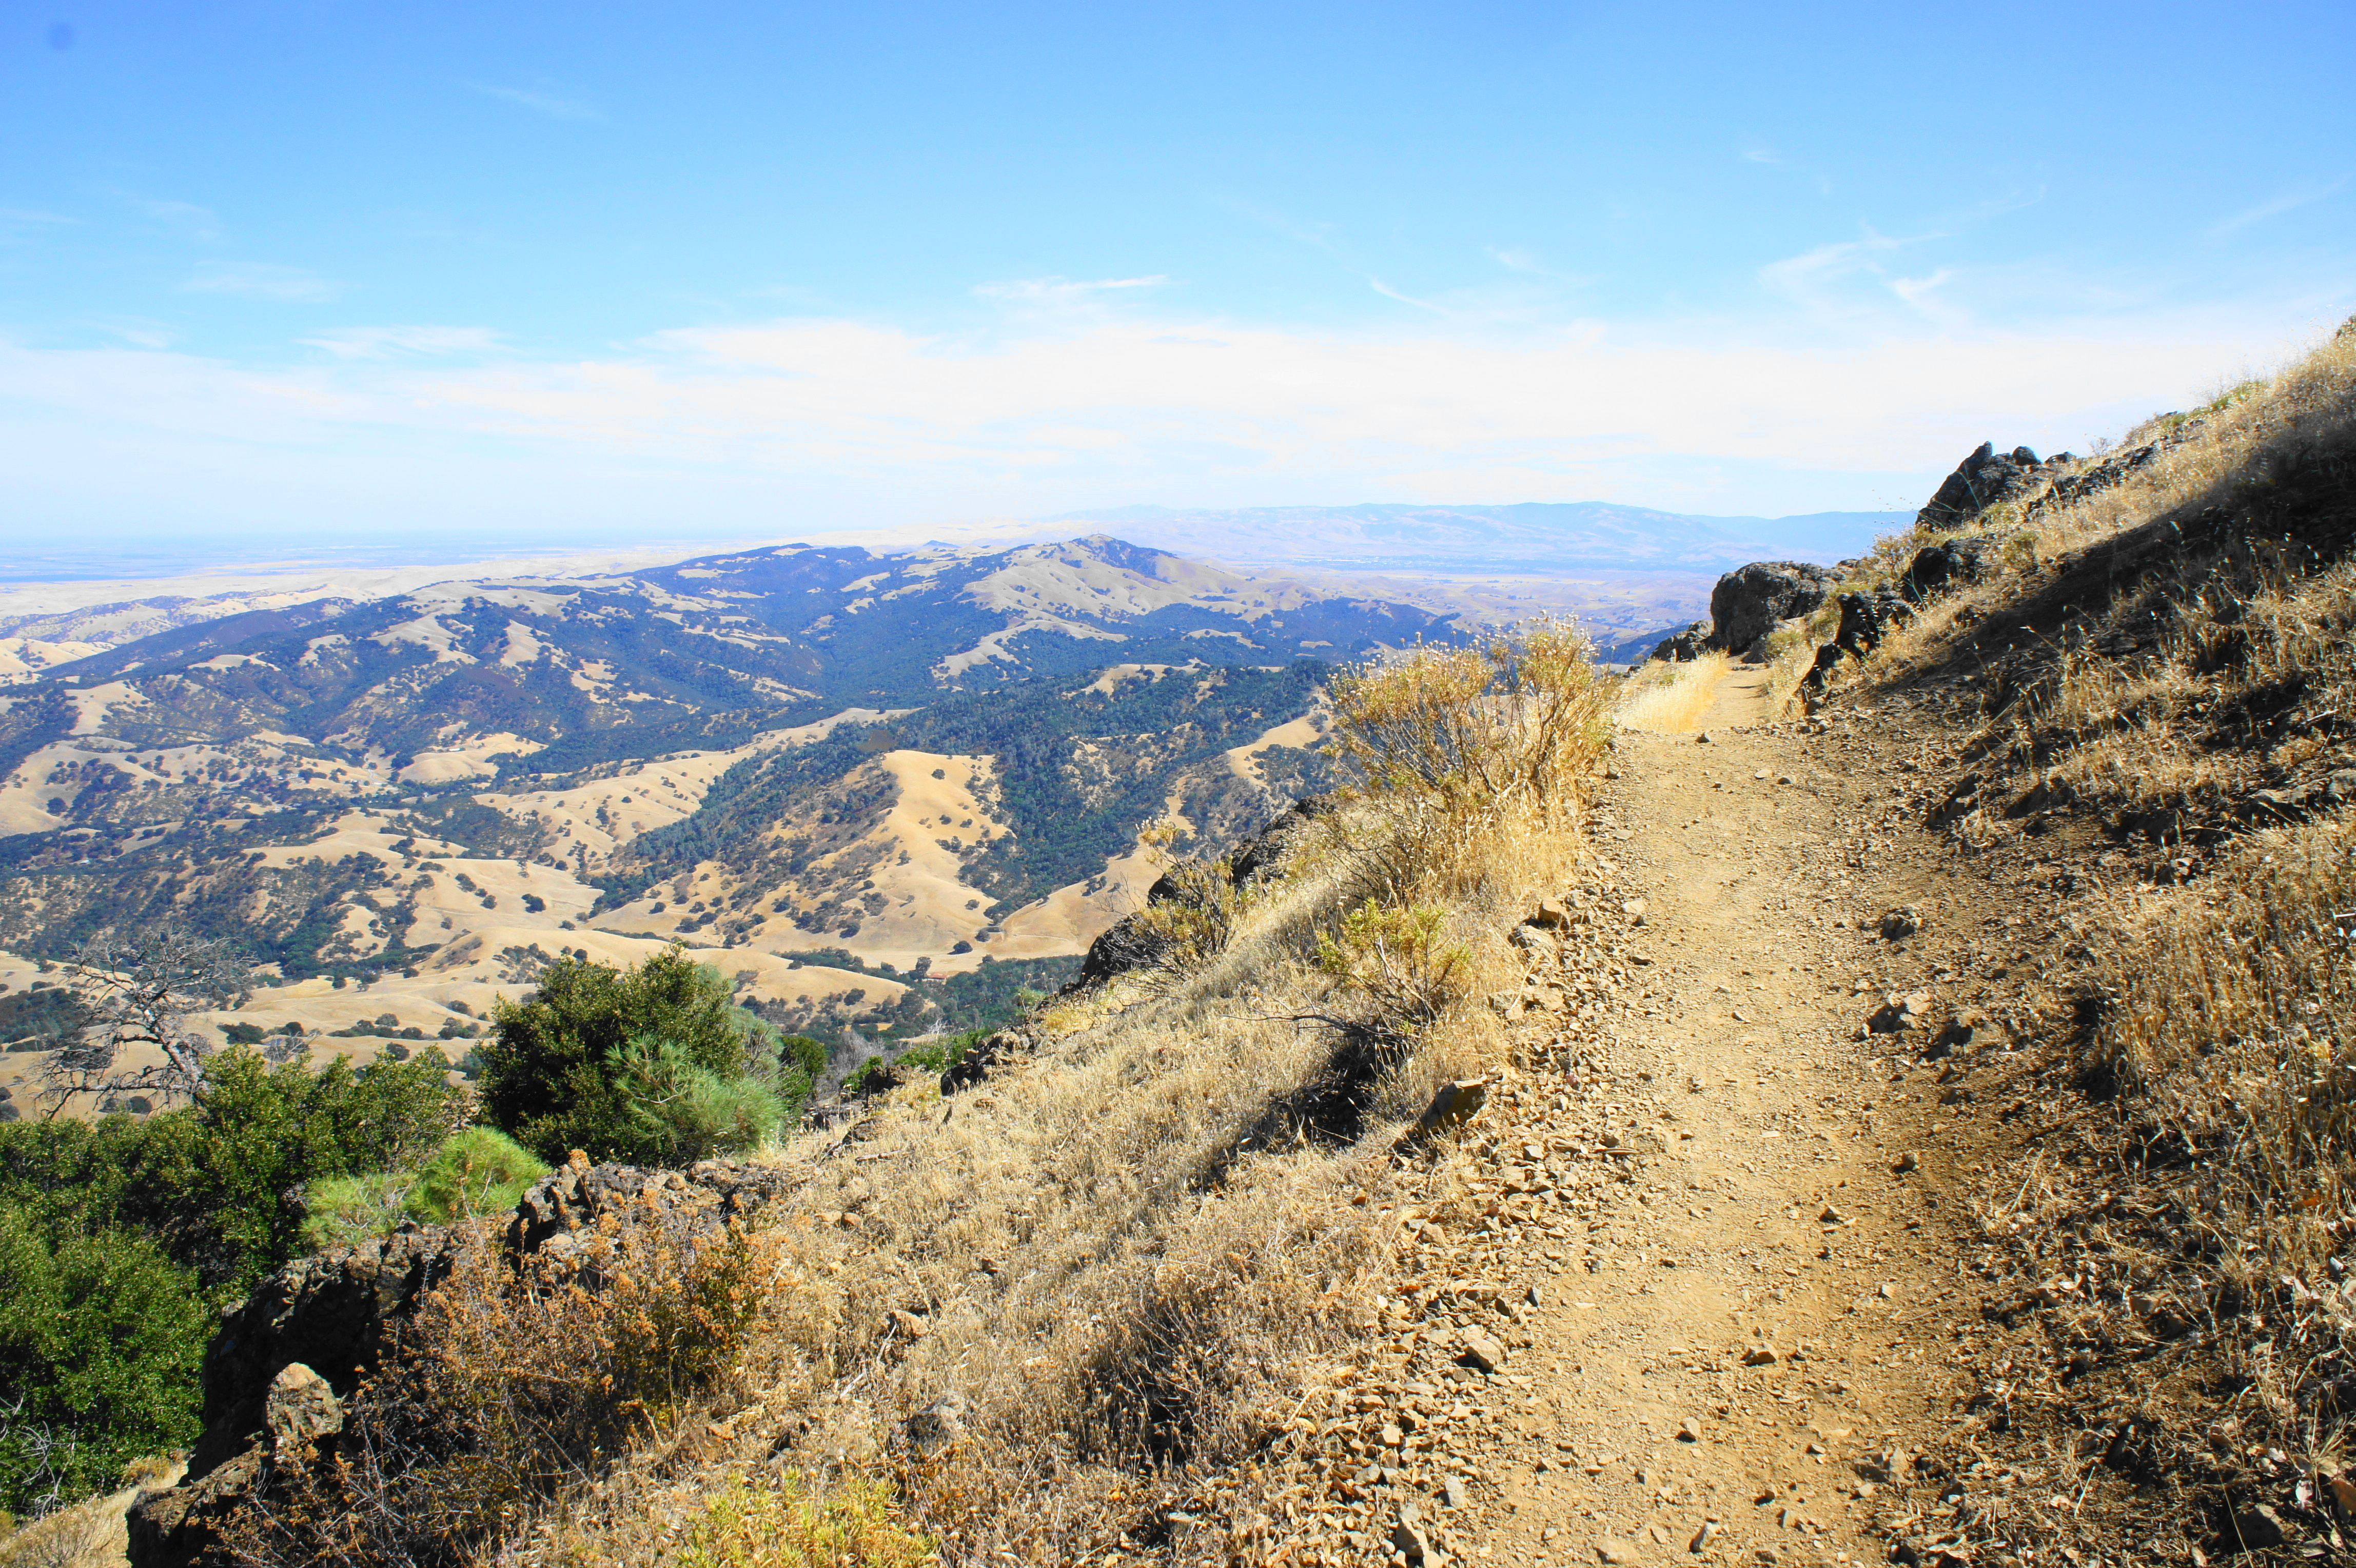 Mount Diablo Via Eagle Peak And Mitchell Canyon Mount Diablo State Park Ca Live And Let Hike